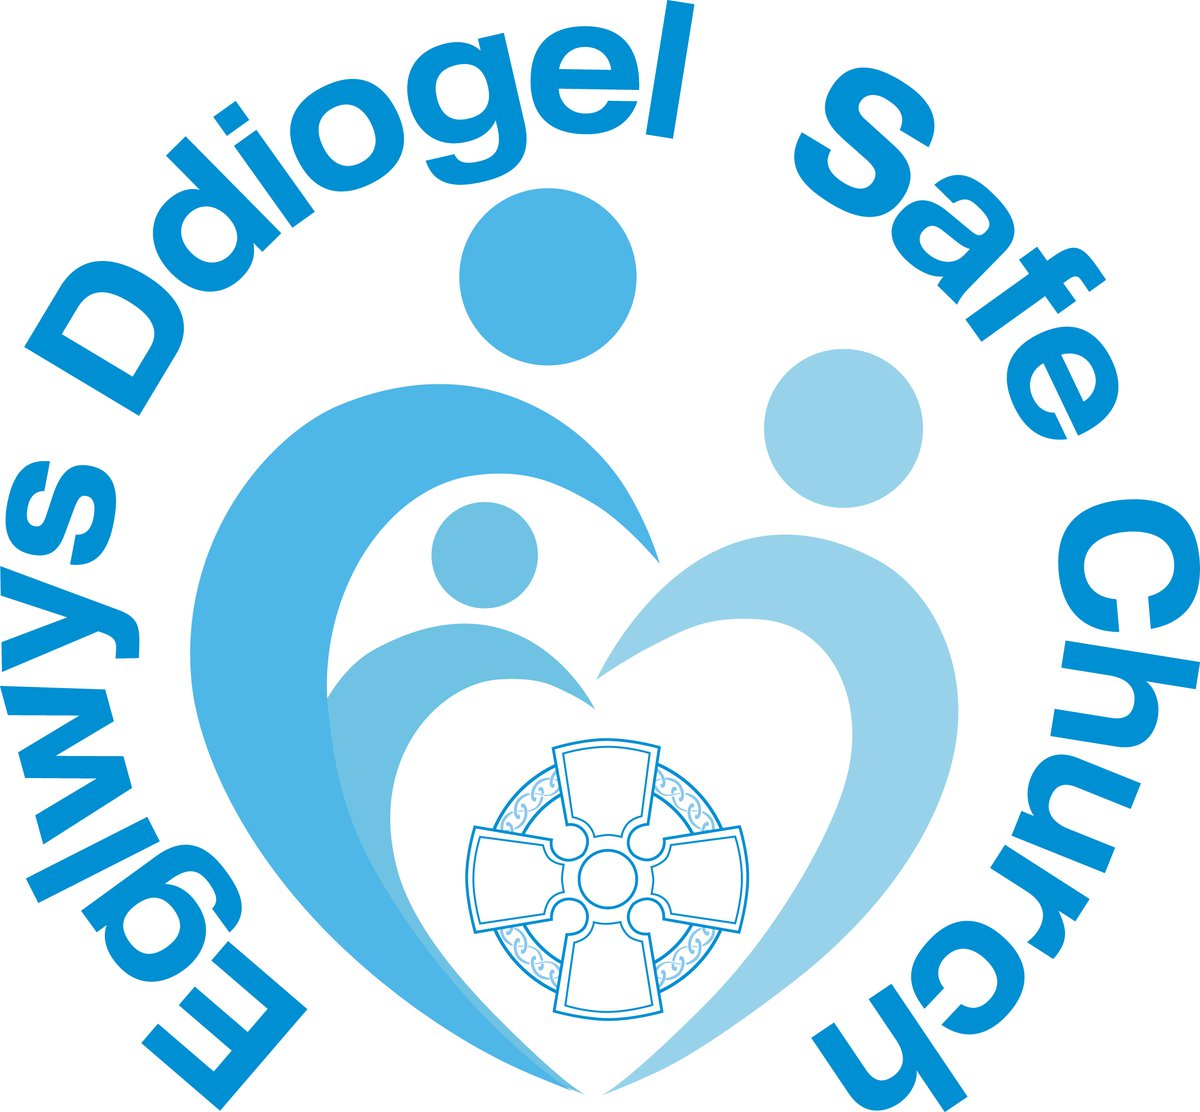 1969 Safe Church Logo.jpg